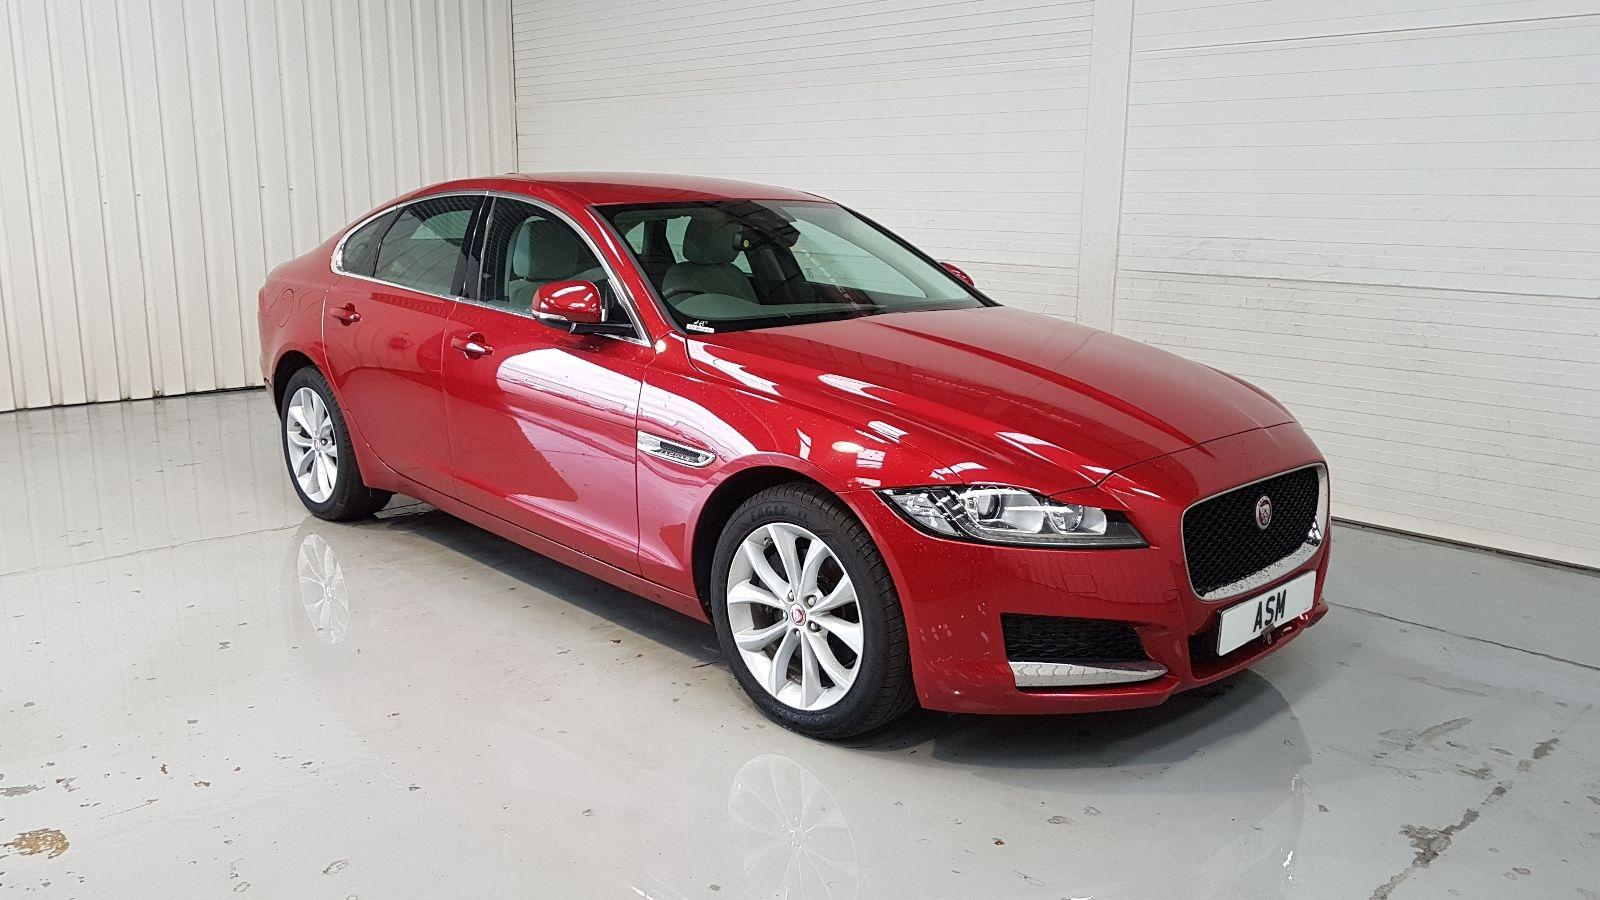 Image for a Jaguar Xf 2017 4 Door Saloon